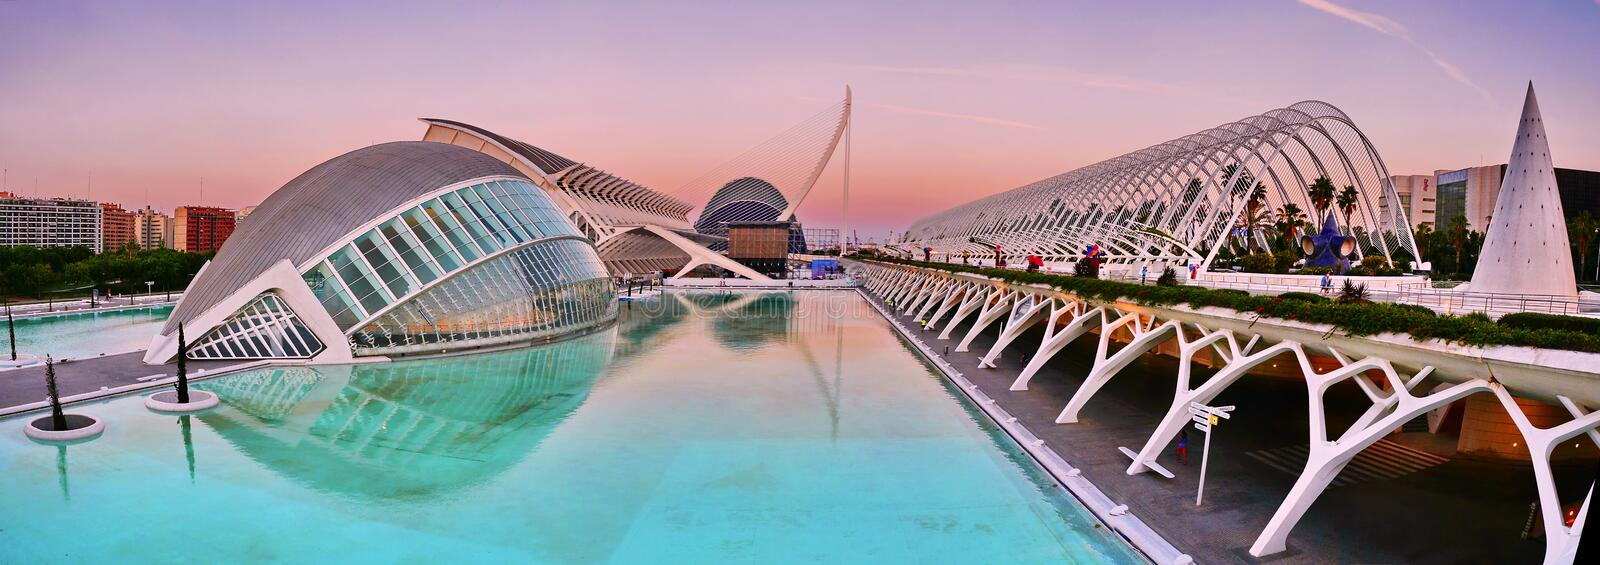 City of Arts and Sciences in Valencia, Spain. City of Arts and Sciences at sunset in Valencia, Spain royalty free stock photos